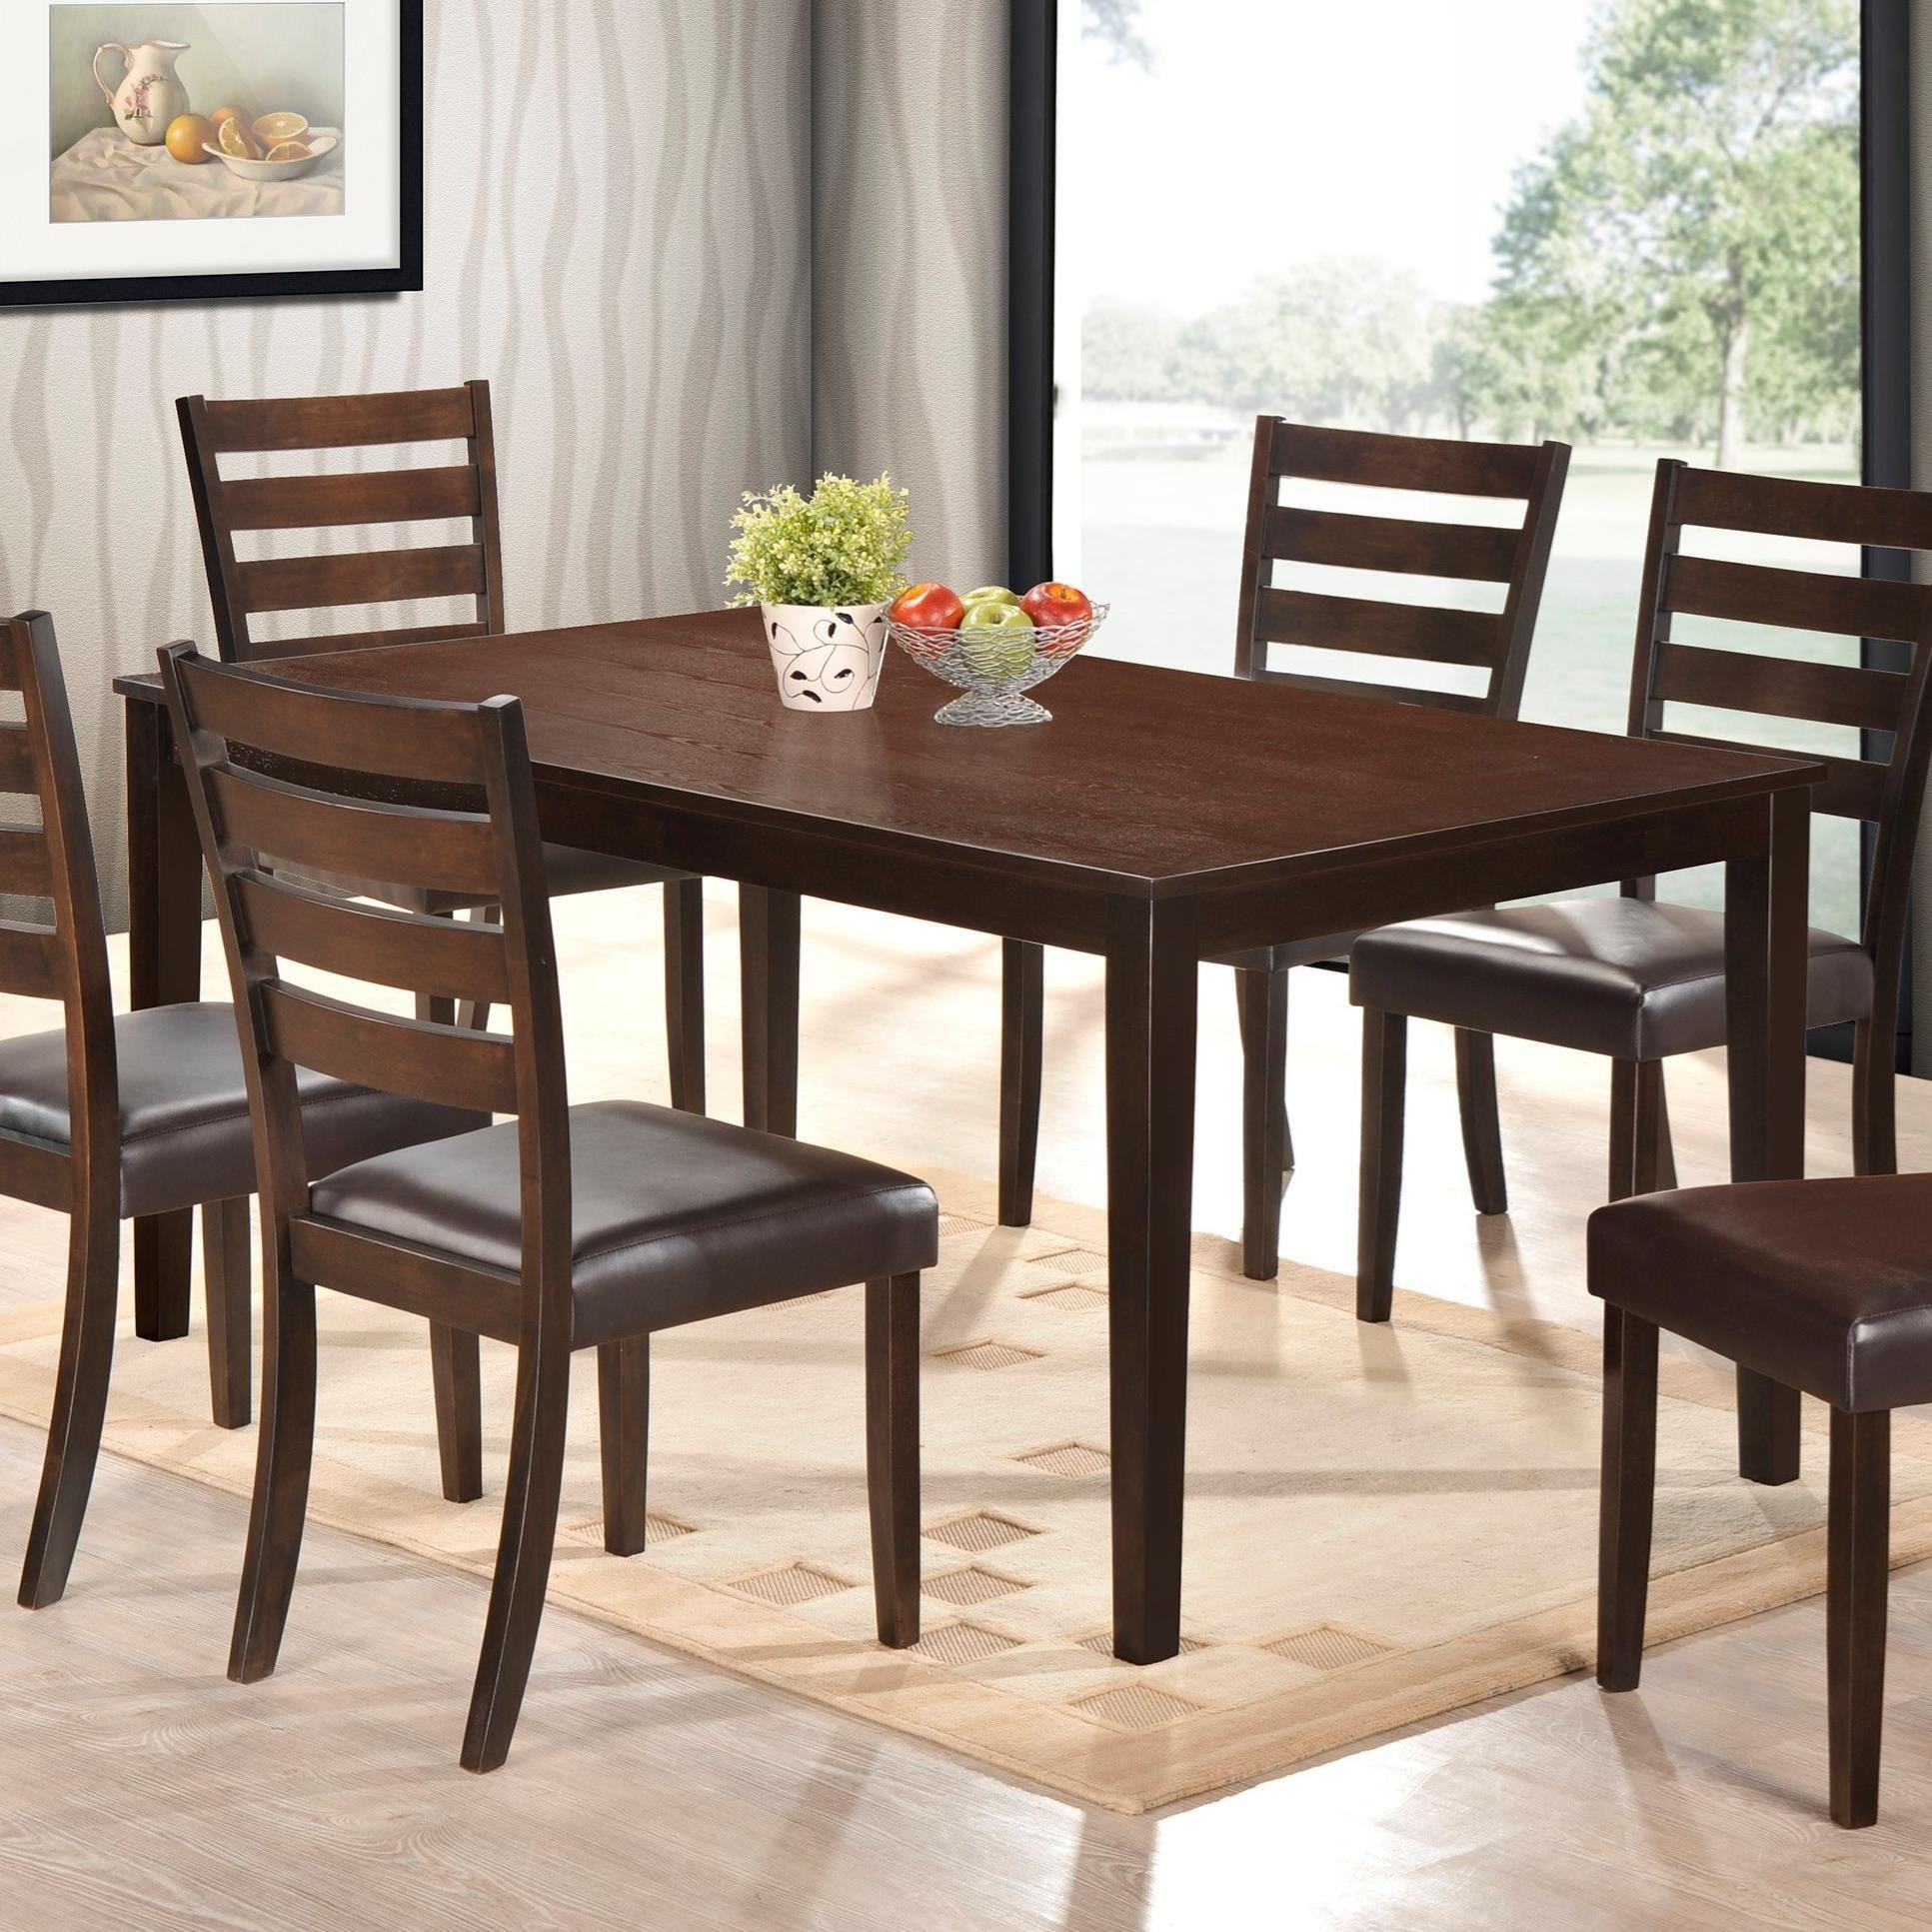 Crown mark aubery dining 2340t 3864 dining table in rich for Dining table finish